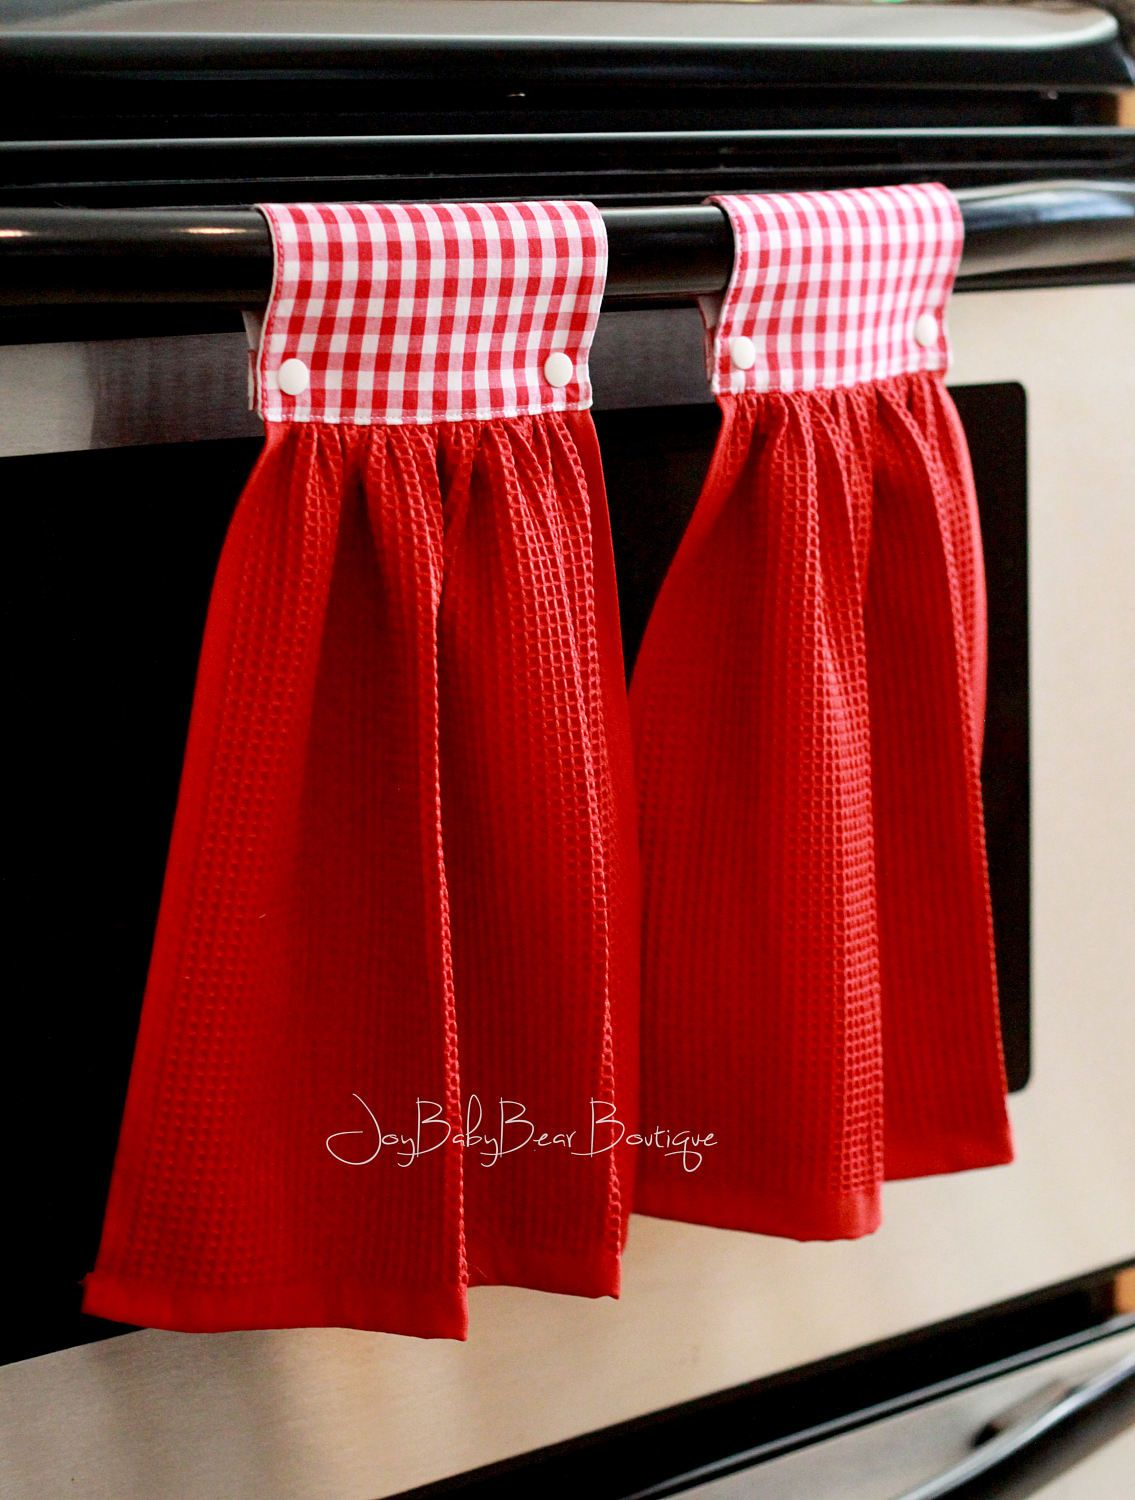 Red Gingham Towels Hanging Kitchen Towel Red Kitchen Towel Hanging Hand Towel Country Kitchen Decorativ Dish Towel Crafts Towel Crafts Hand Towels Kitchen